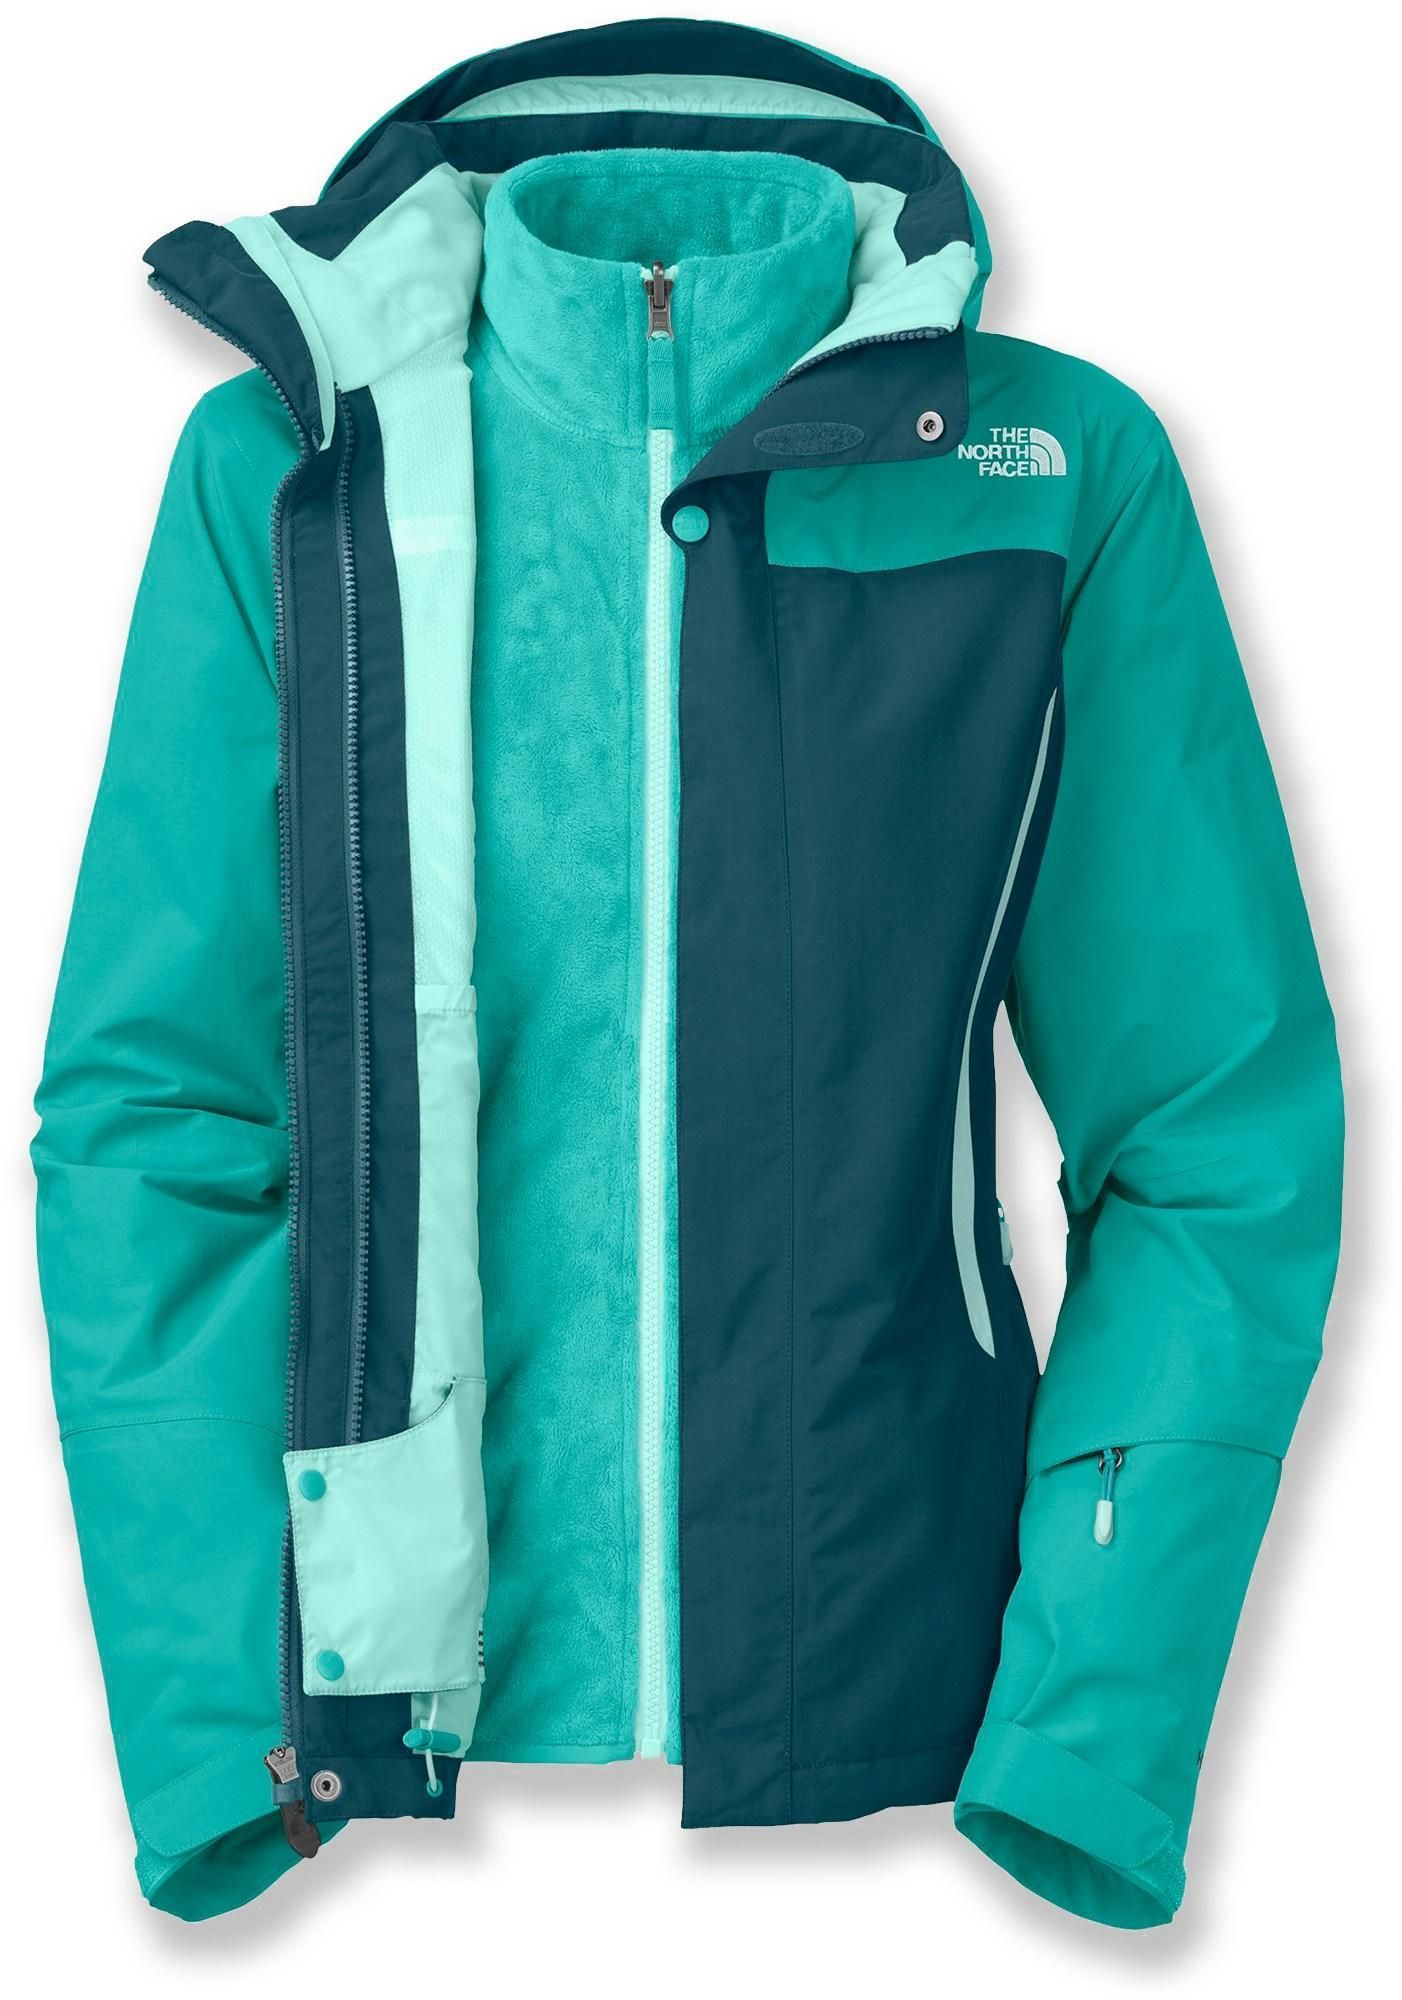 80239c7918 The North Face Kardiak Triclimate 3-in-1 Insulated Jacket - Women's.  #wintercoatssnow